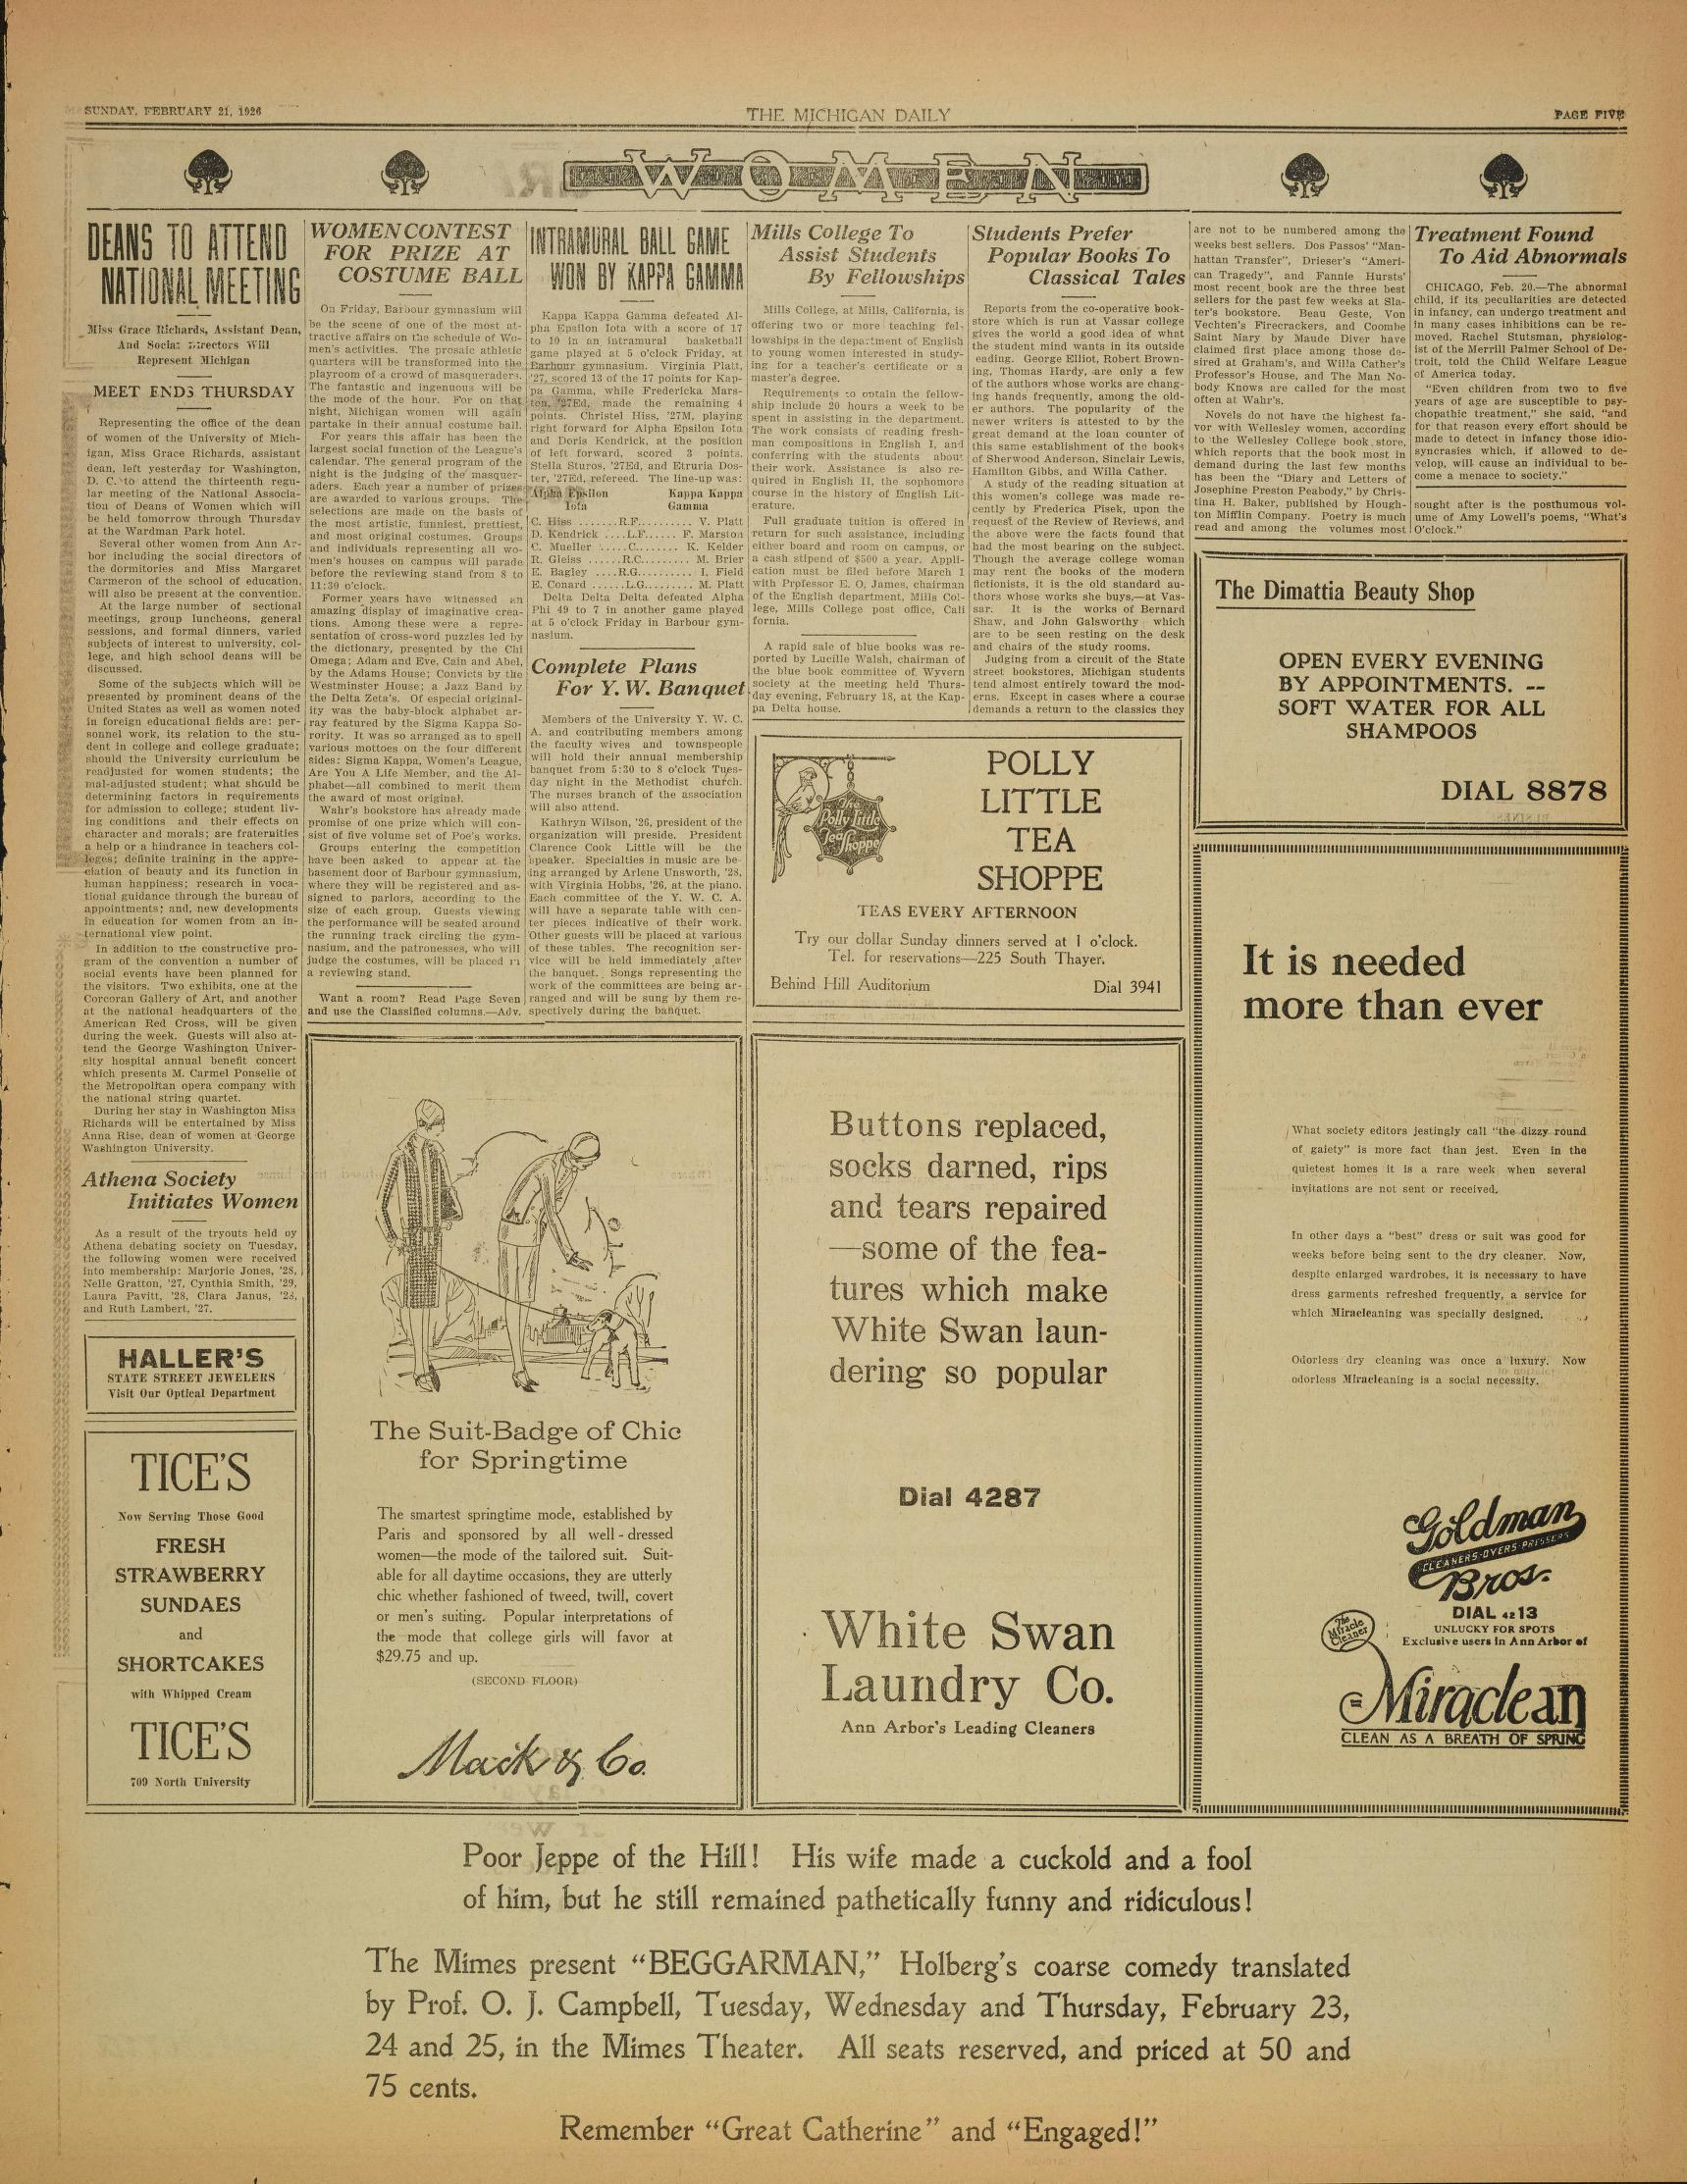 Michigan Daily Digital Archives January 21 1926 vol 36 iss